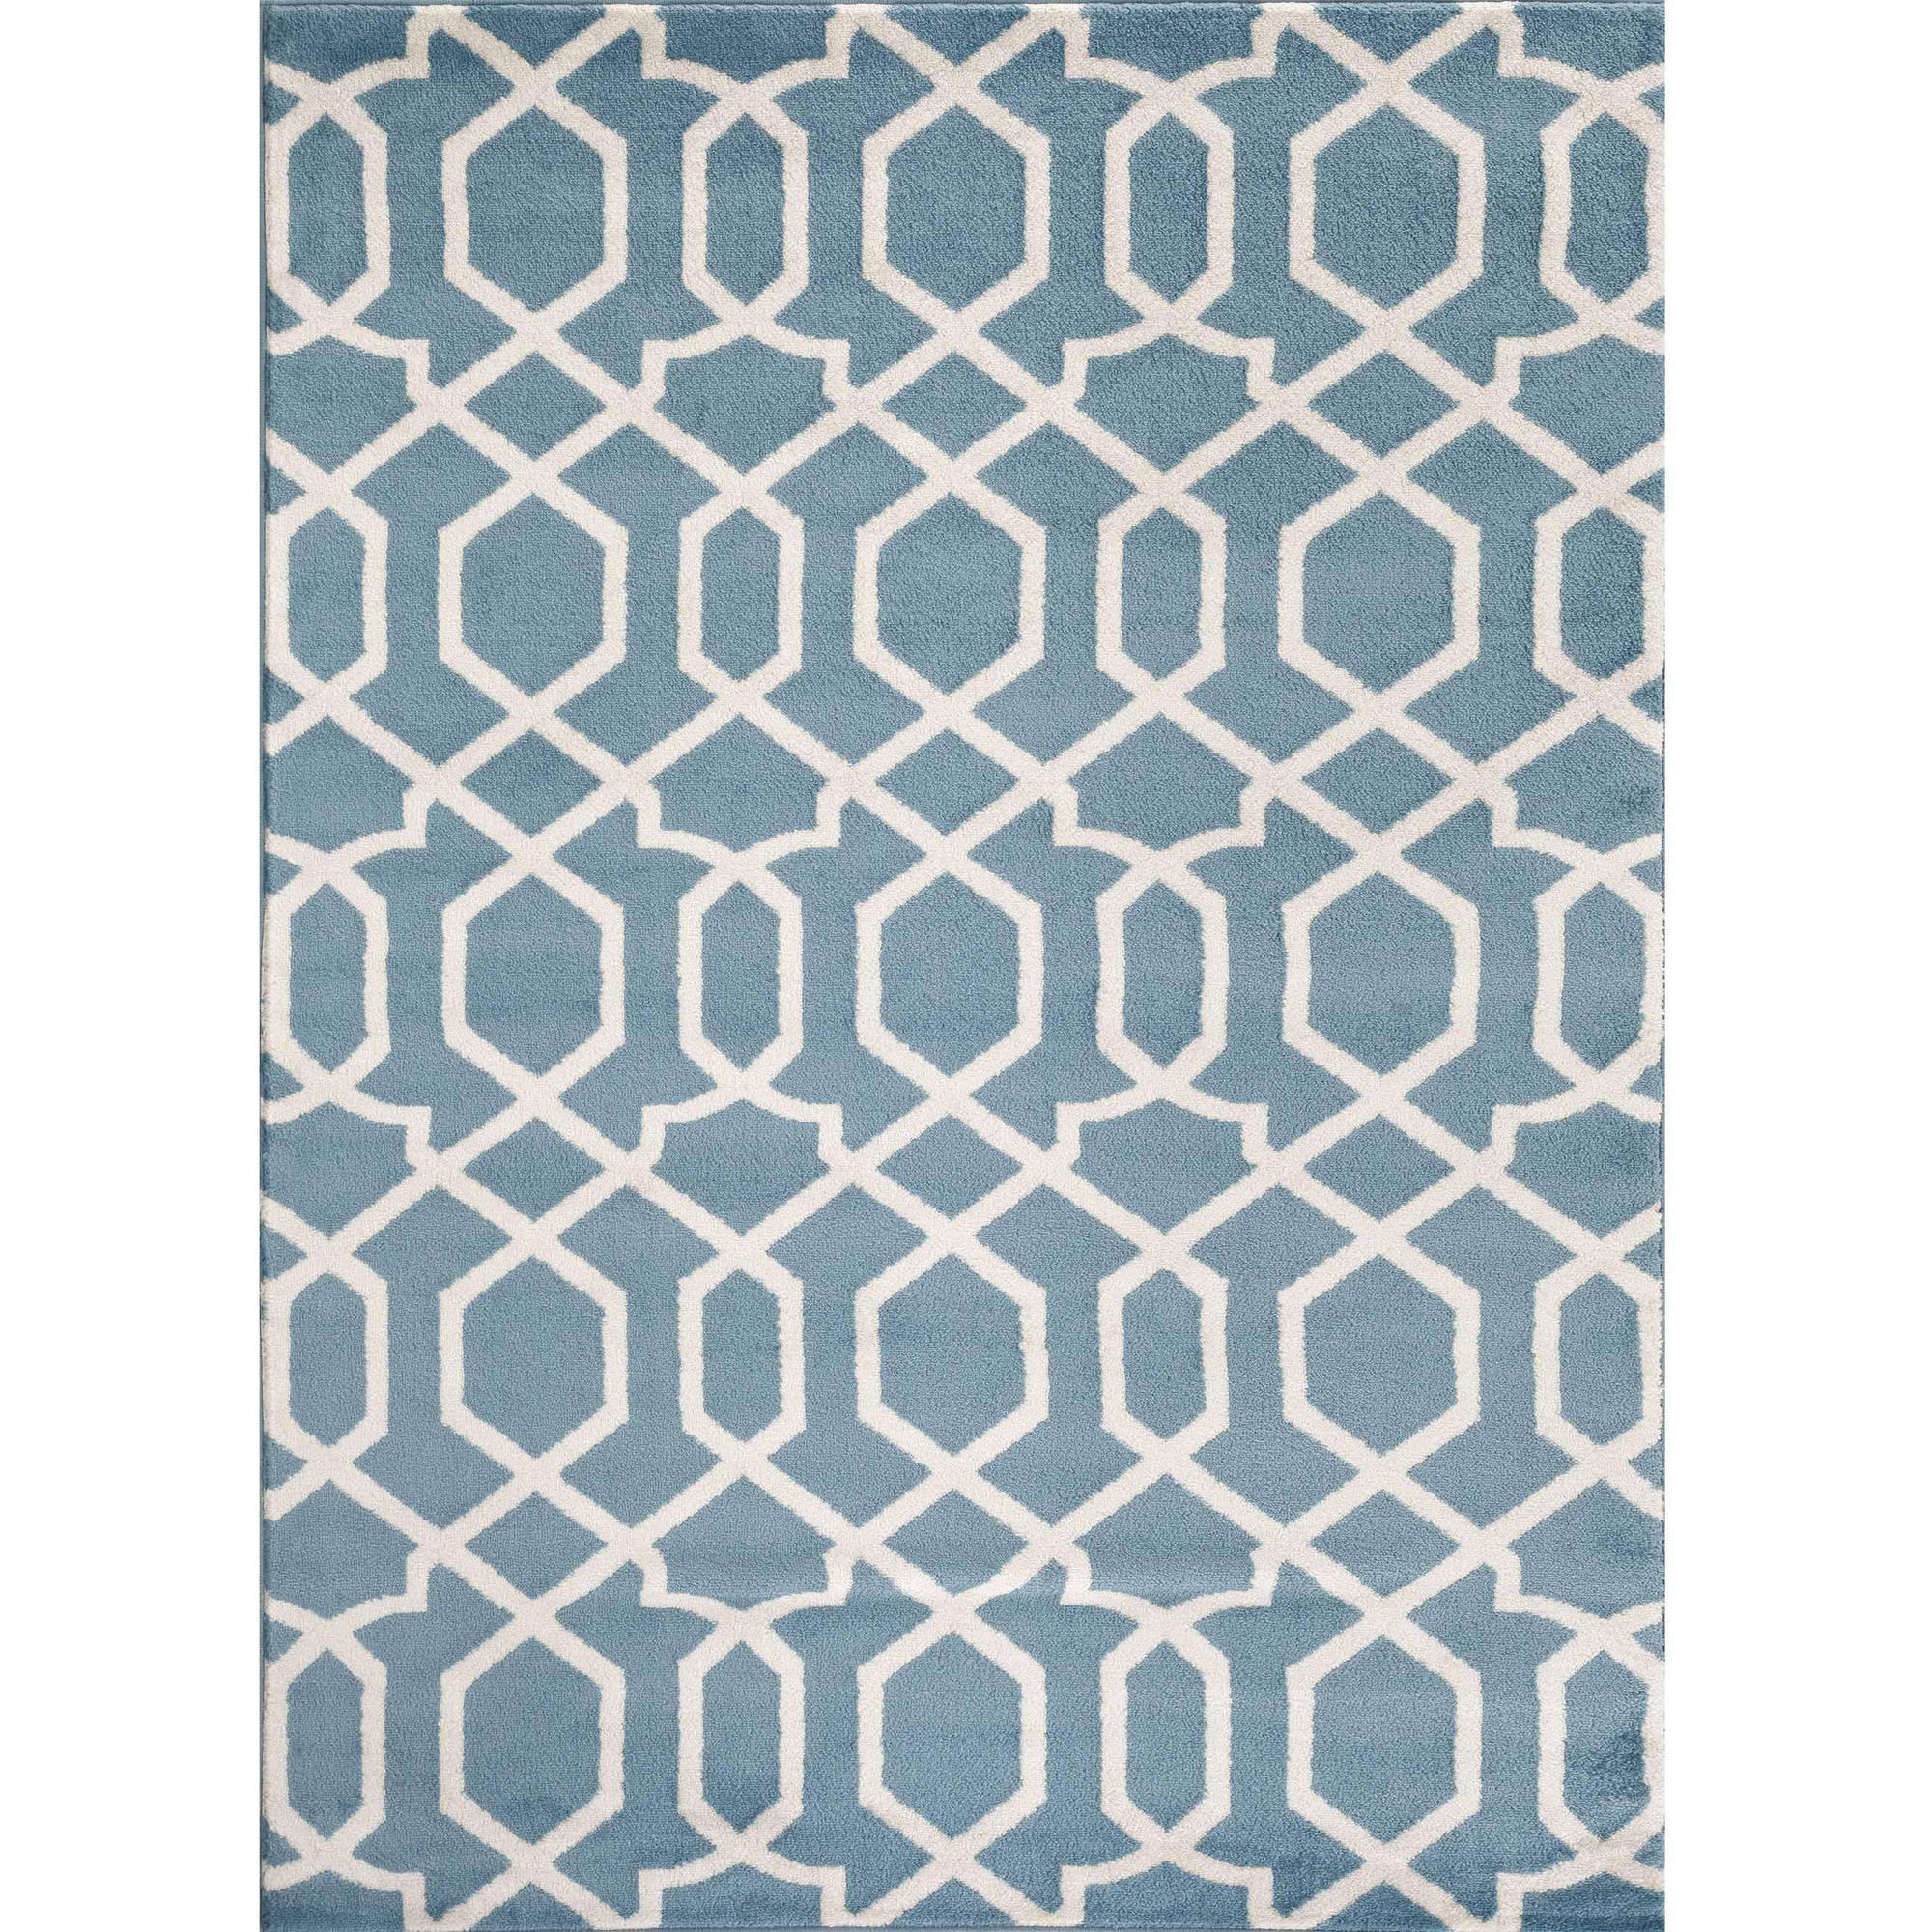 rugs for photo inspirations of area tiny living room size full houses pinterest rug blue turquoise